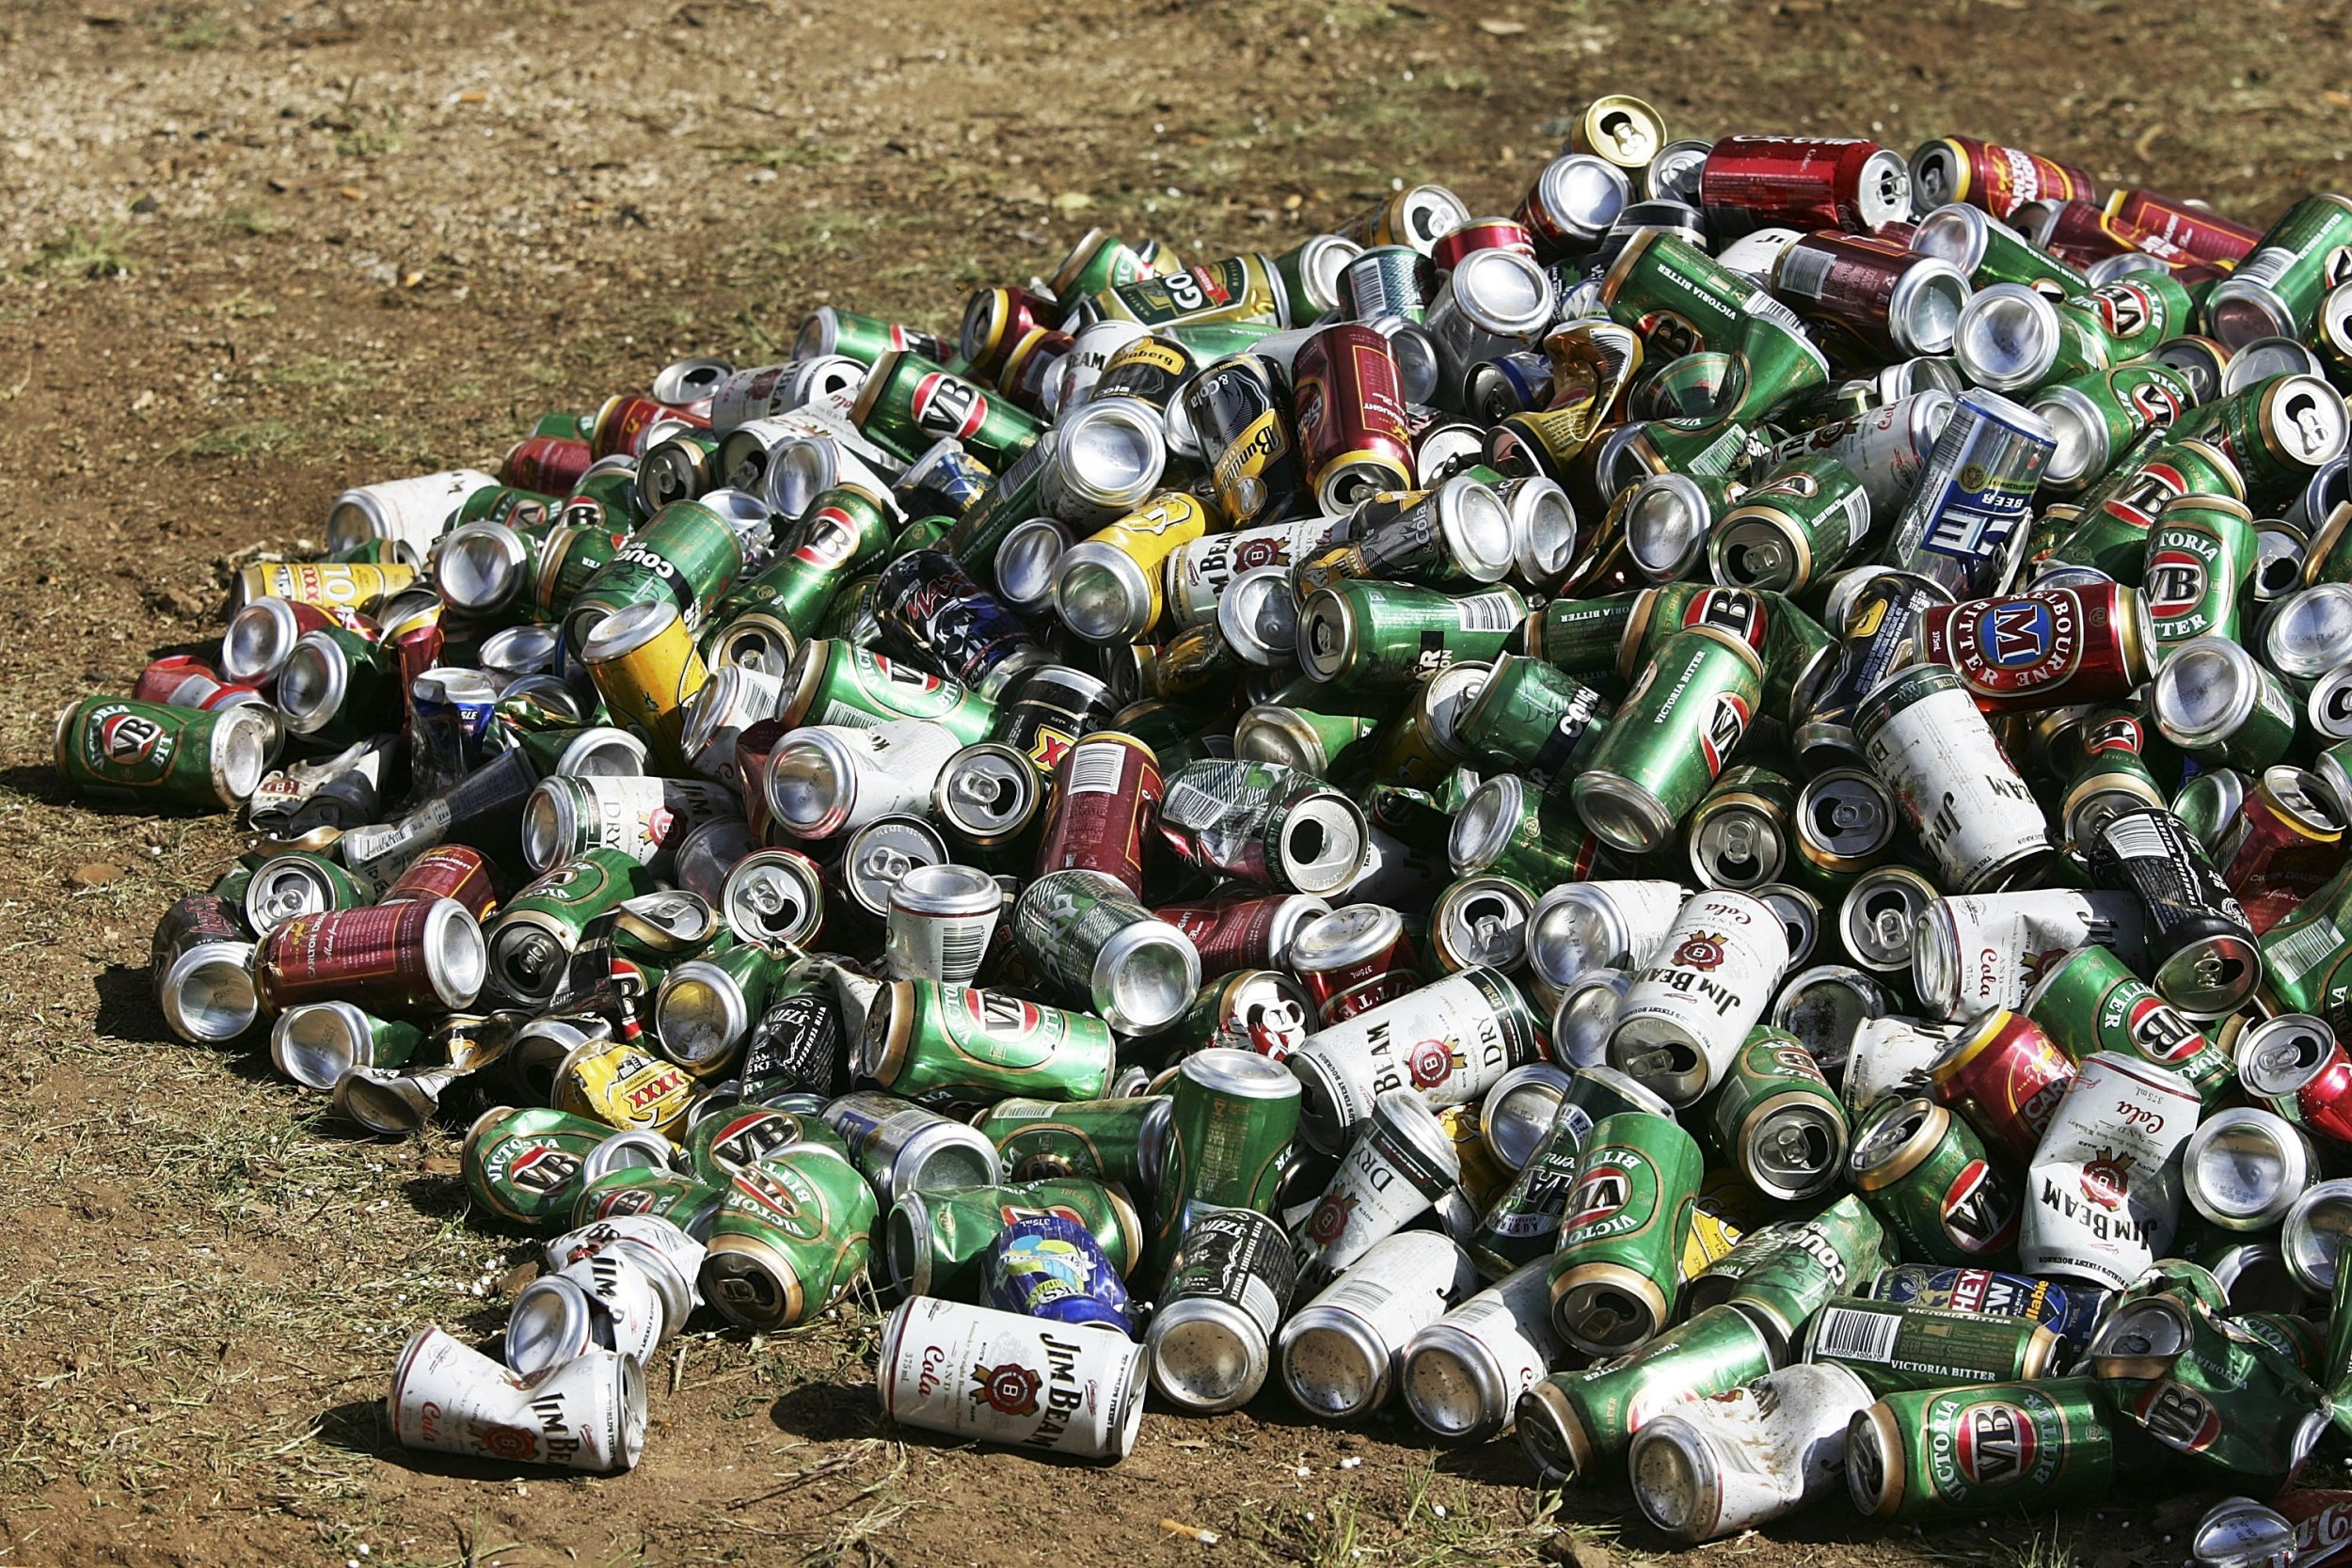 12_27_beercan